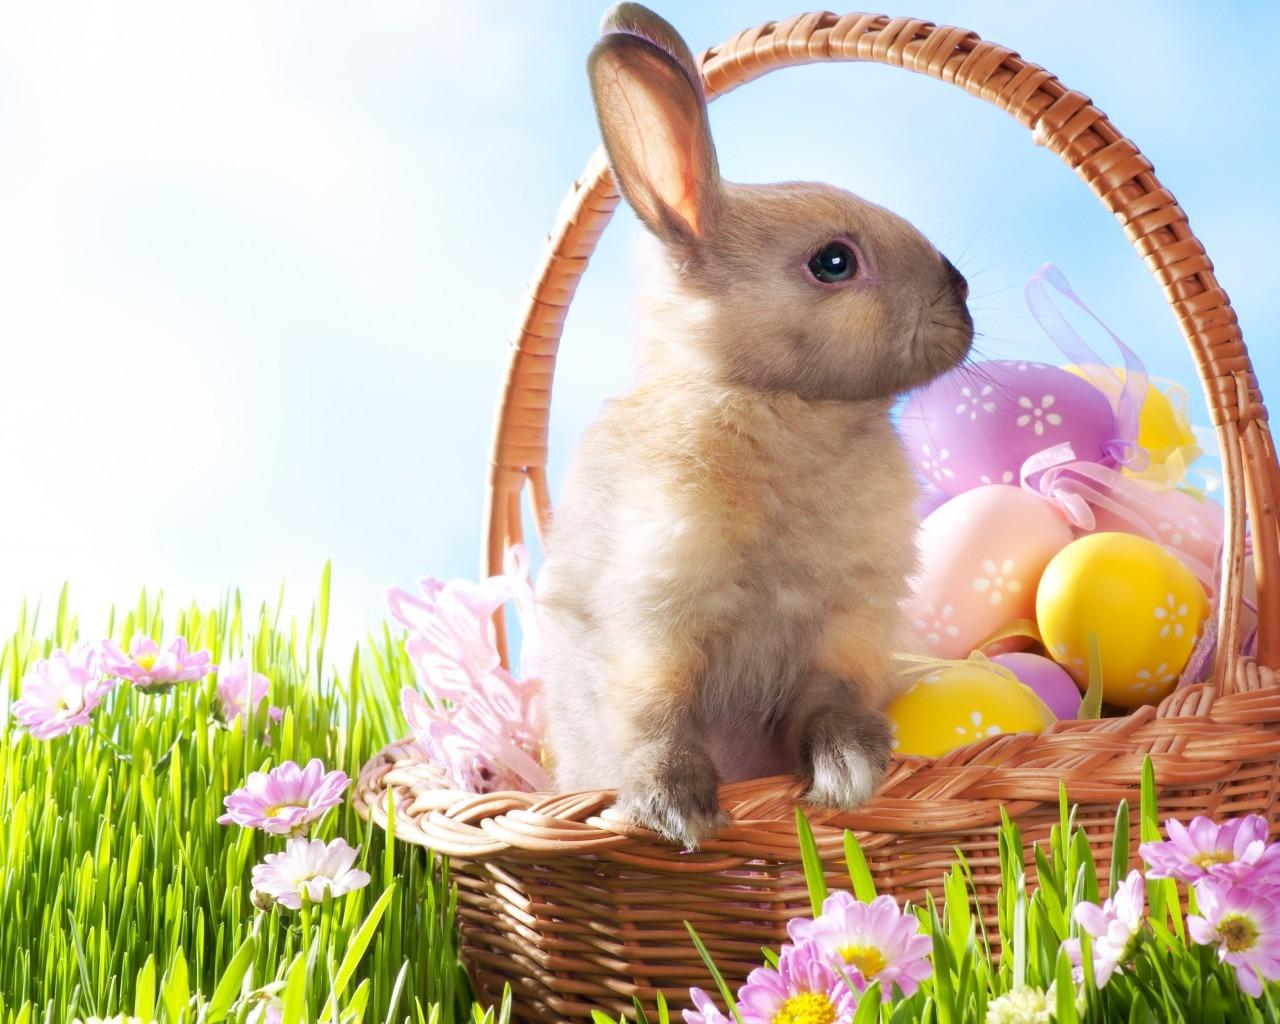 Why do Easter dates move around and why the Easter Bunny?